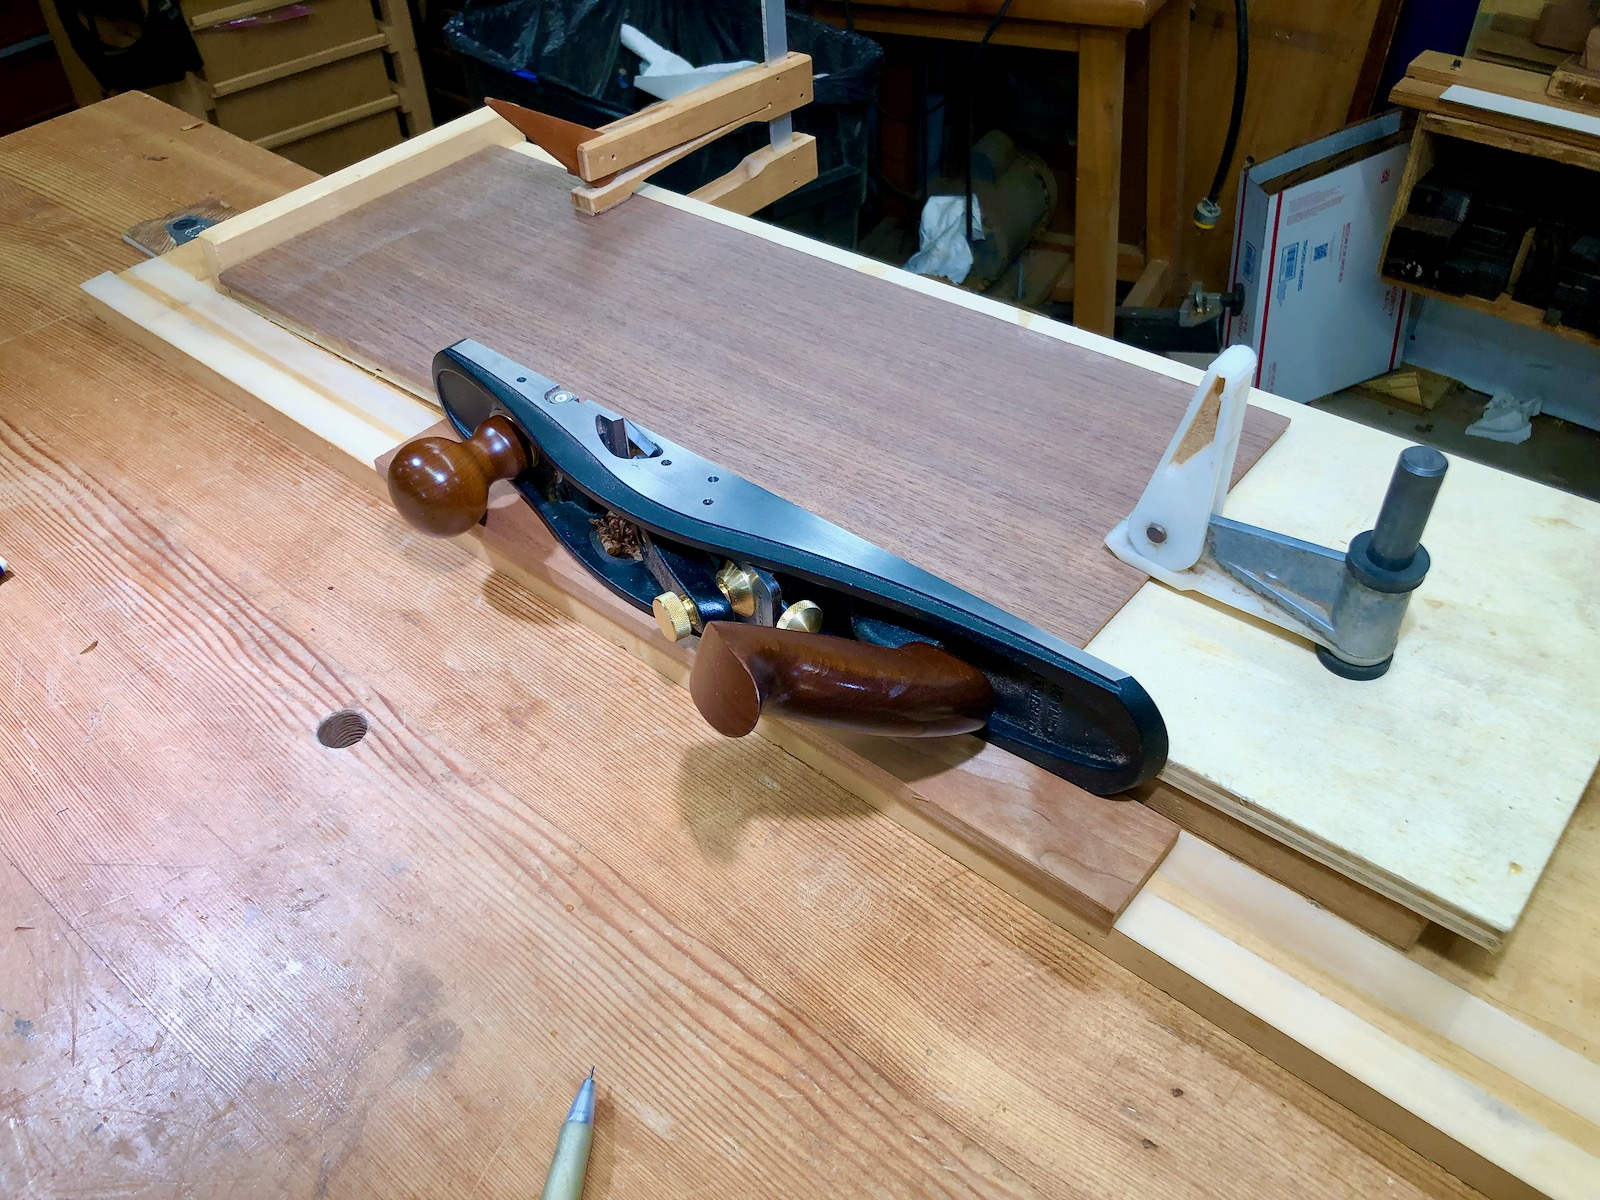 Jointing board and plane